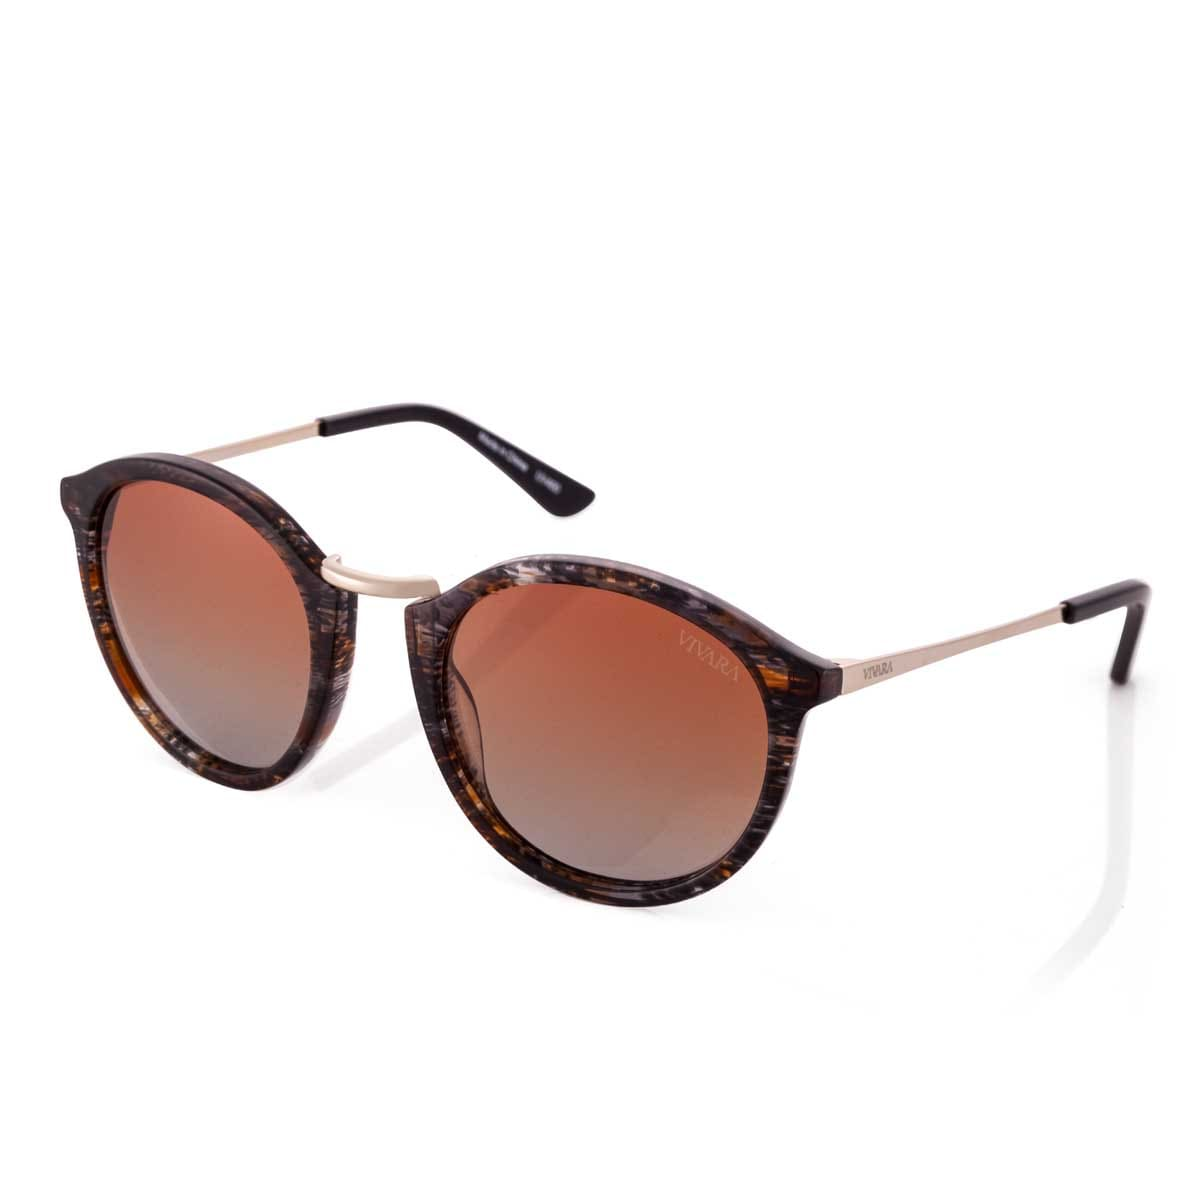 Oculos Feminino De Sol 2013 on ray ban wire